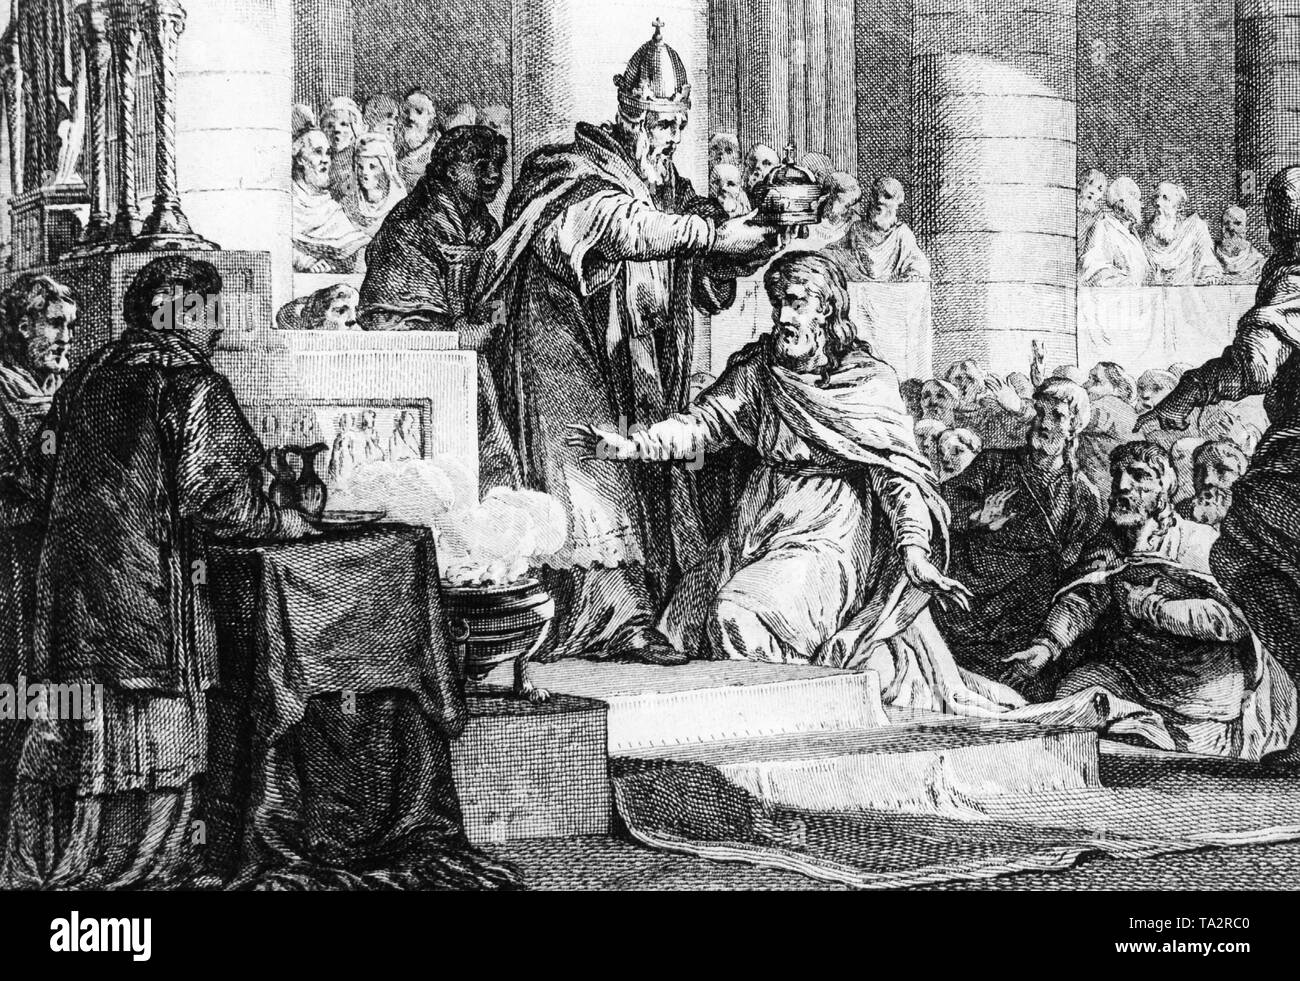 Charlemagne crowned Holy Roman Emperor by Pope Leo III on Christmas Day at Old St. Peter's Basilica in 800. An engraving from the workshop of  I. P. Le Bas after a drawing by J.M. Moreau le Jeune (Paris, circa 1750) - Stock Image